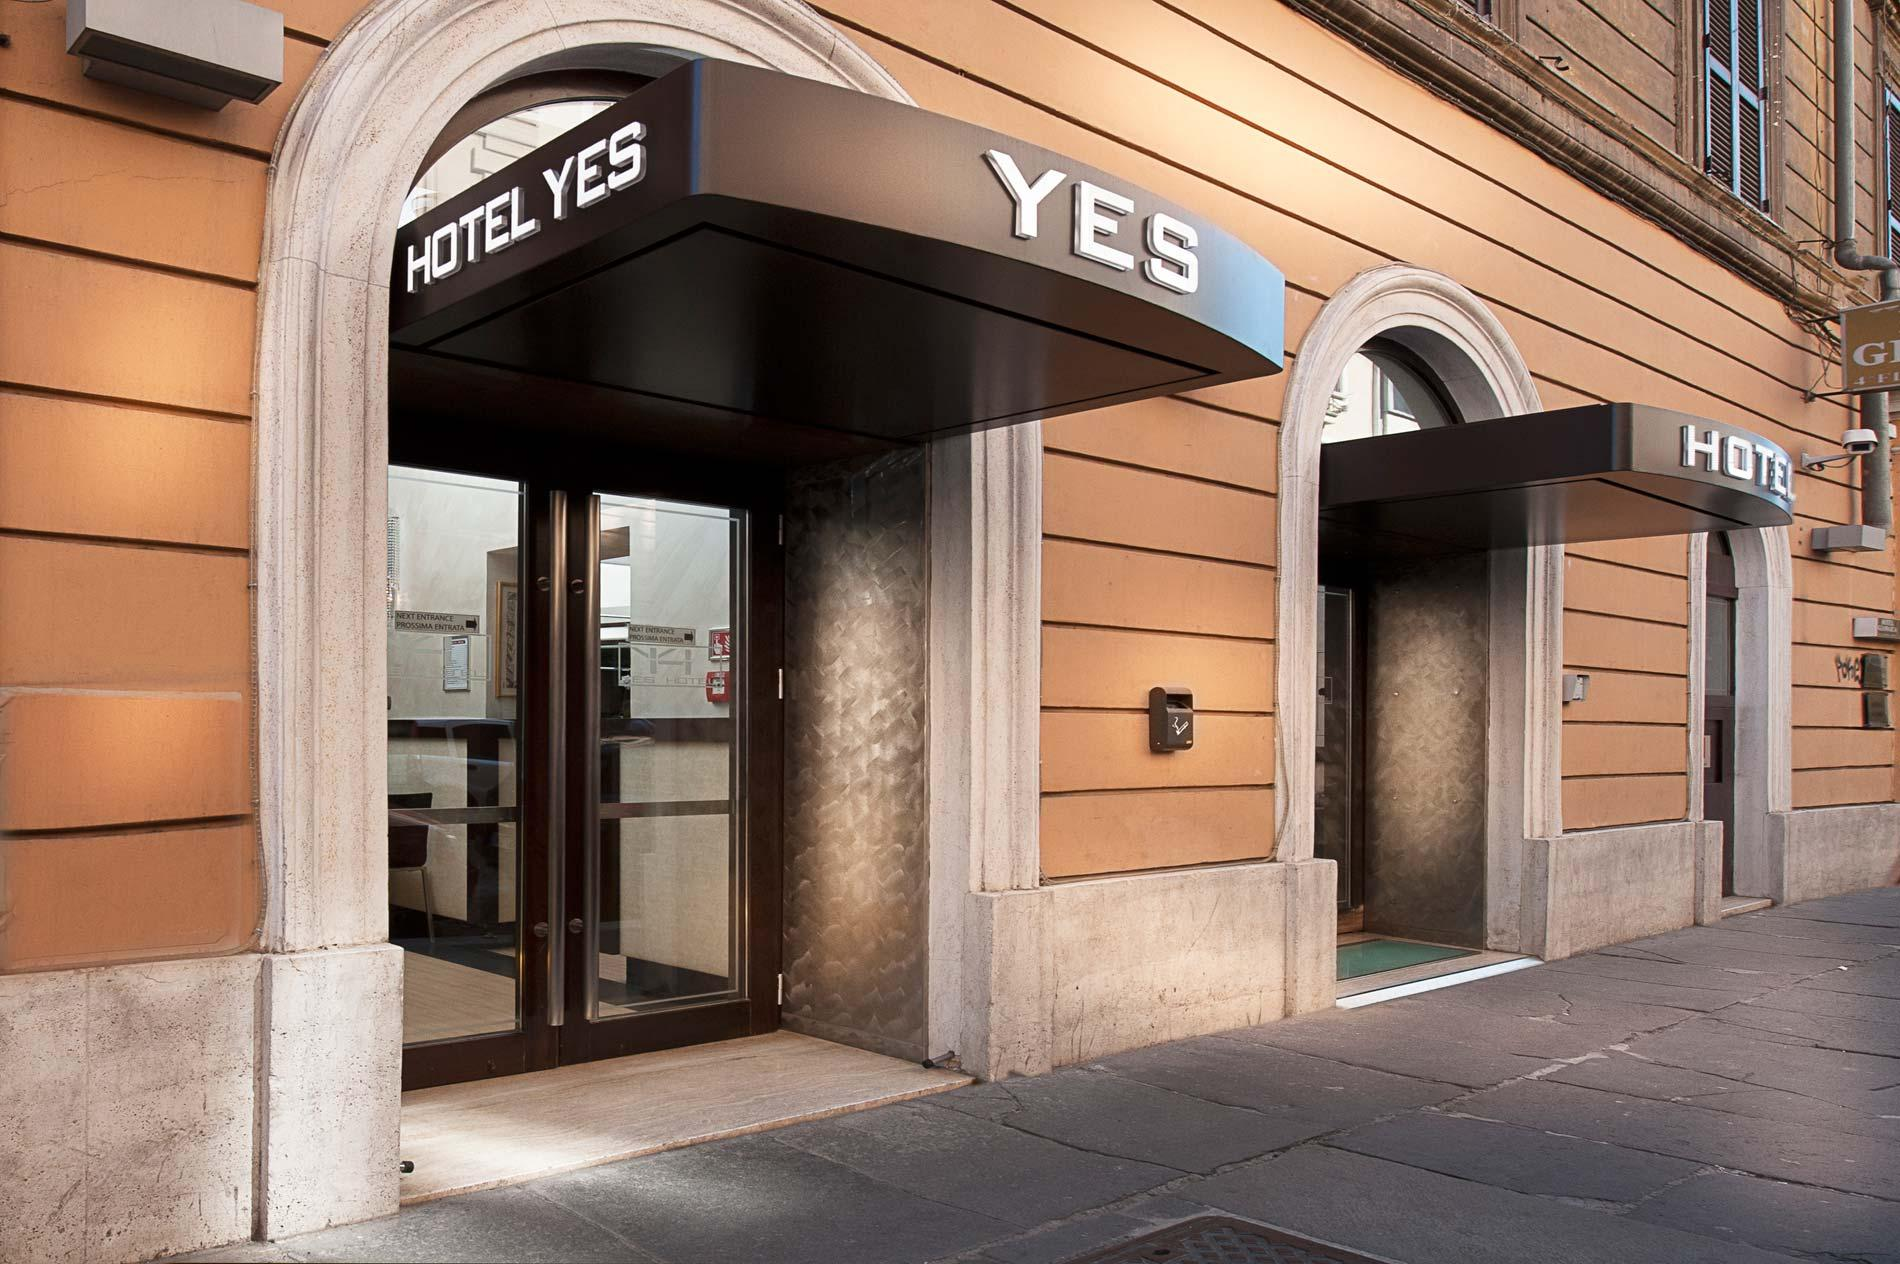 Holidays at Yes Hotel in Rome, Italy